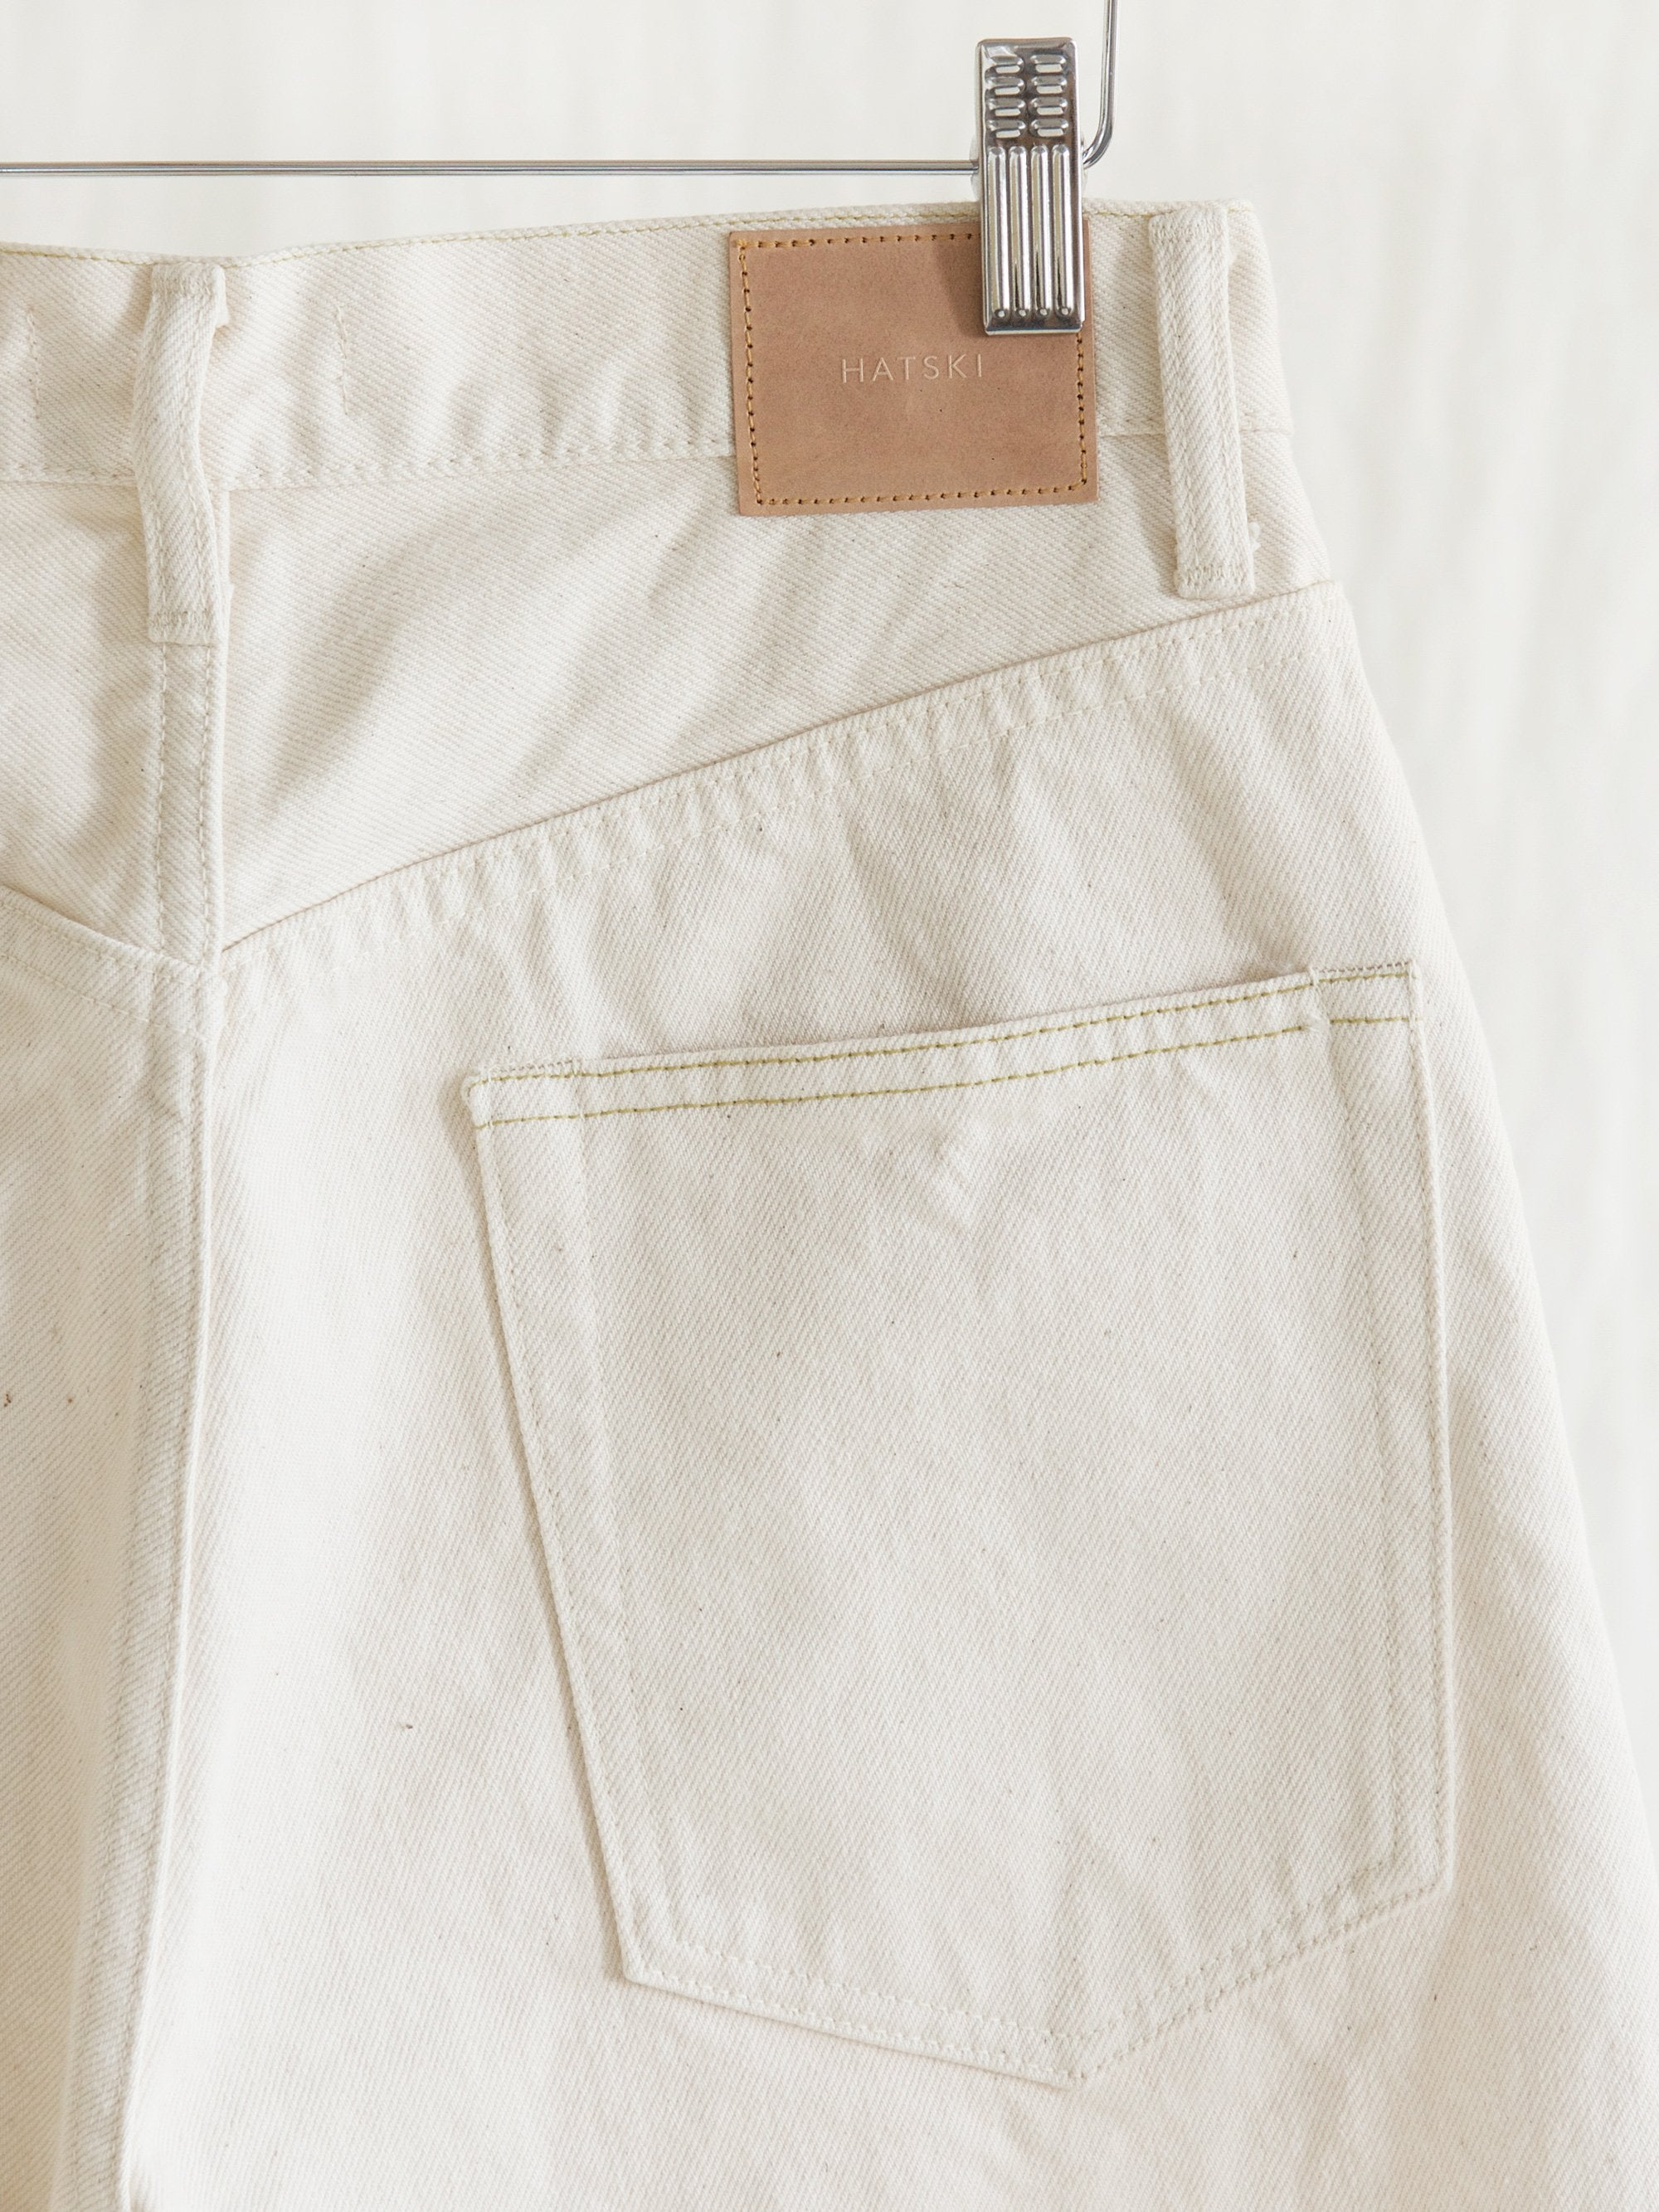 Namu Shop - Hatski Loose Tapered Denim - Ecru